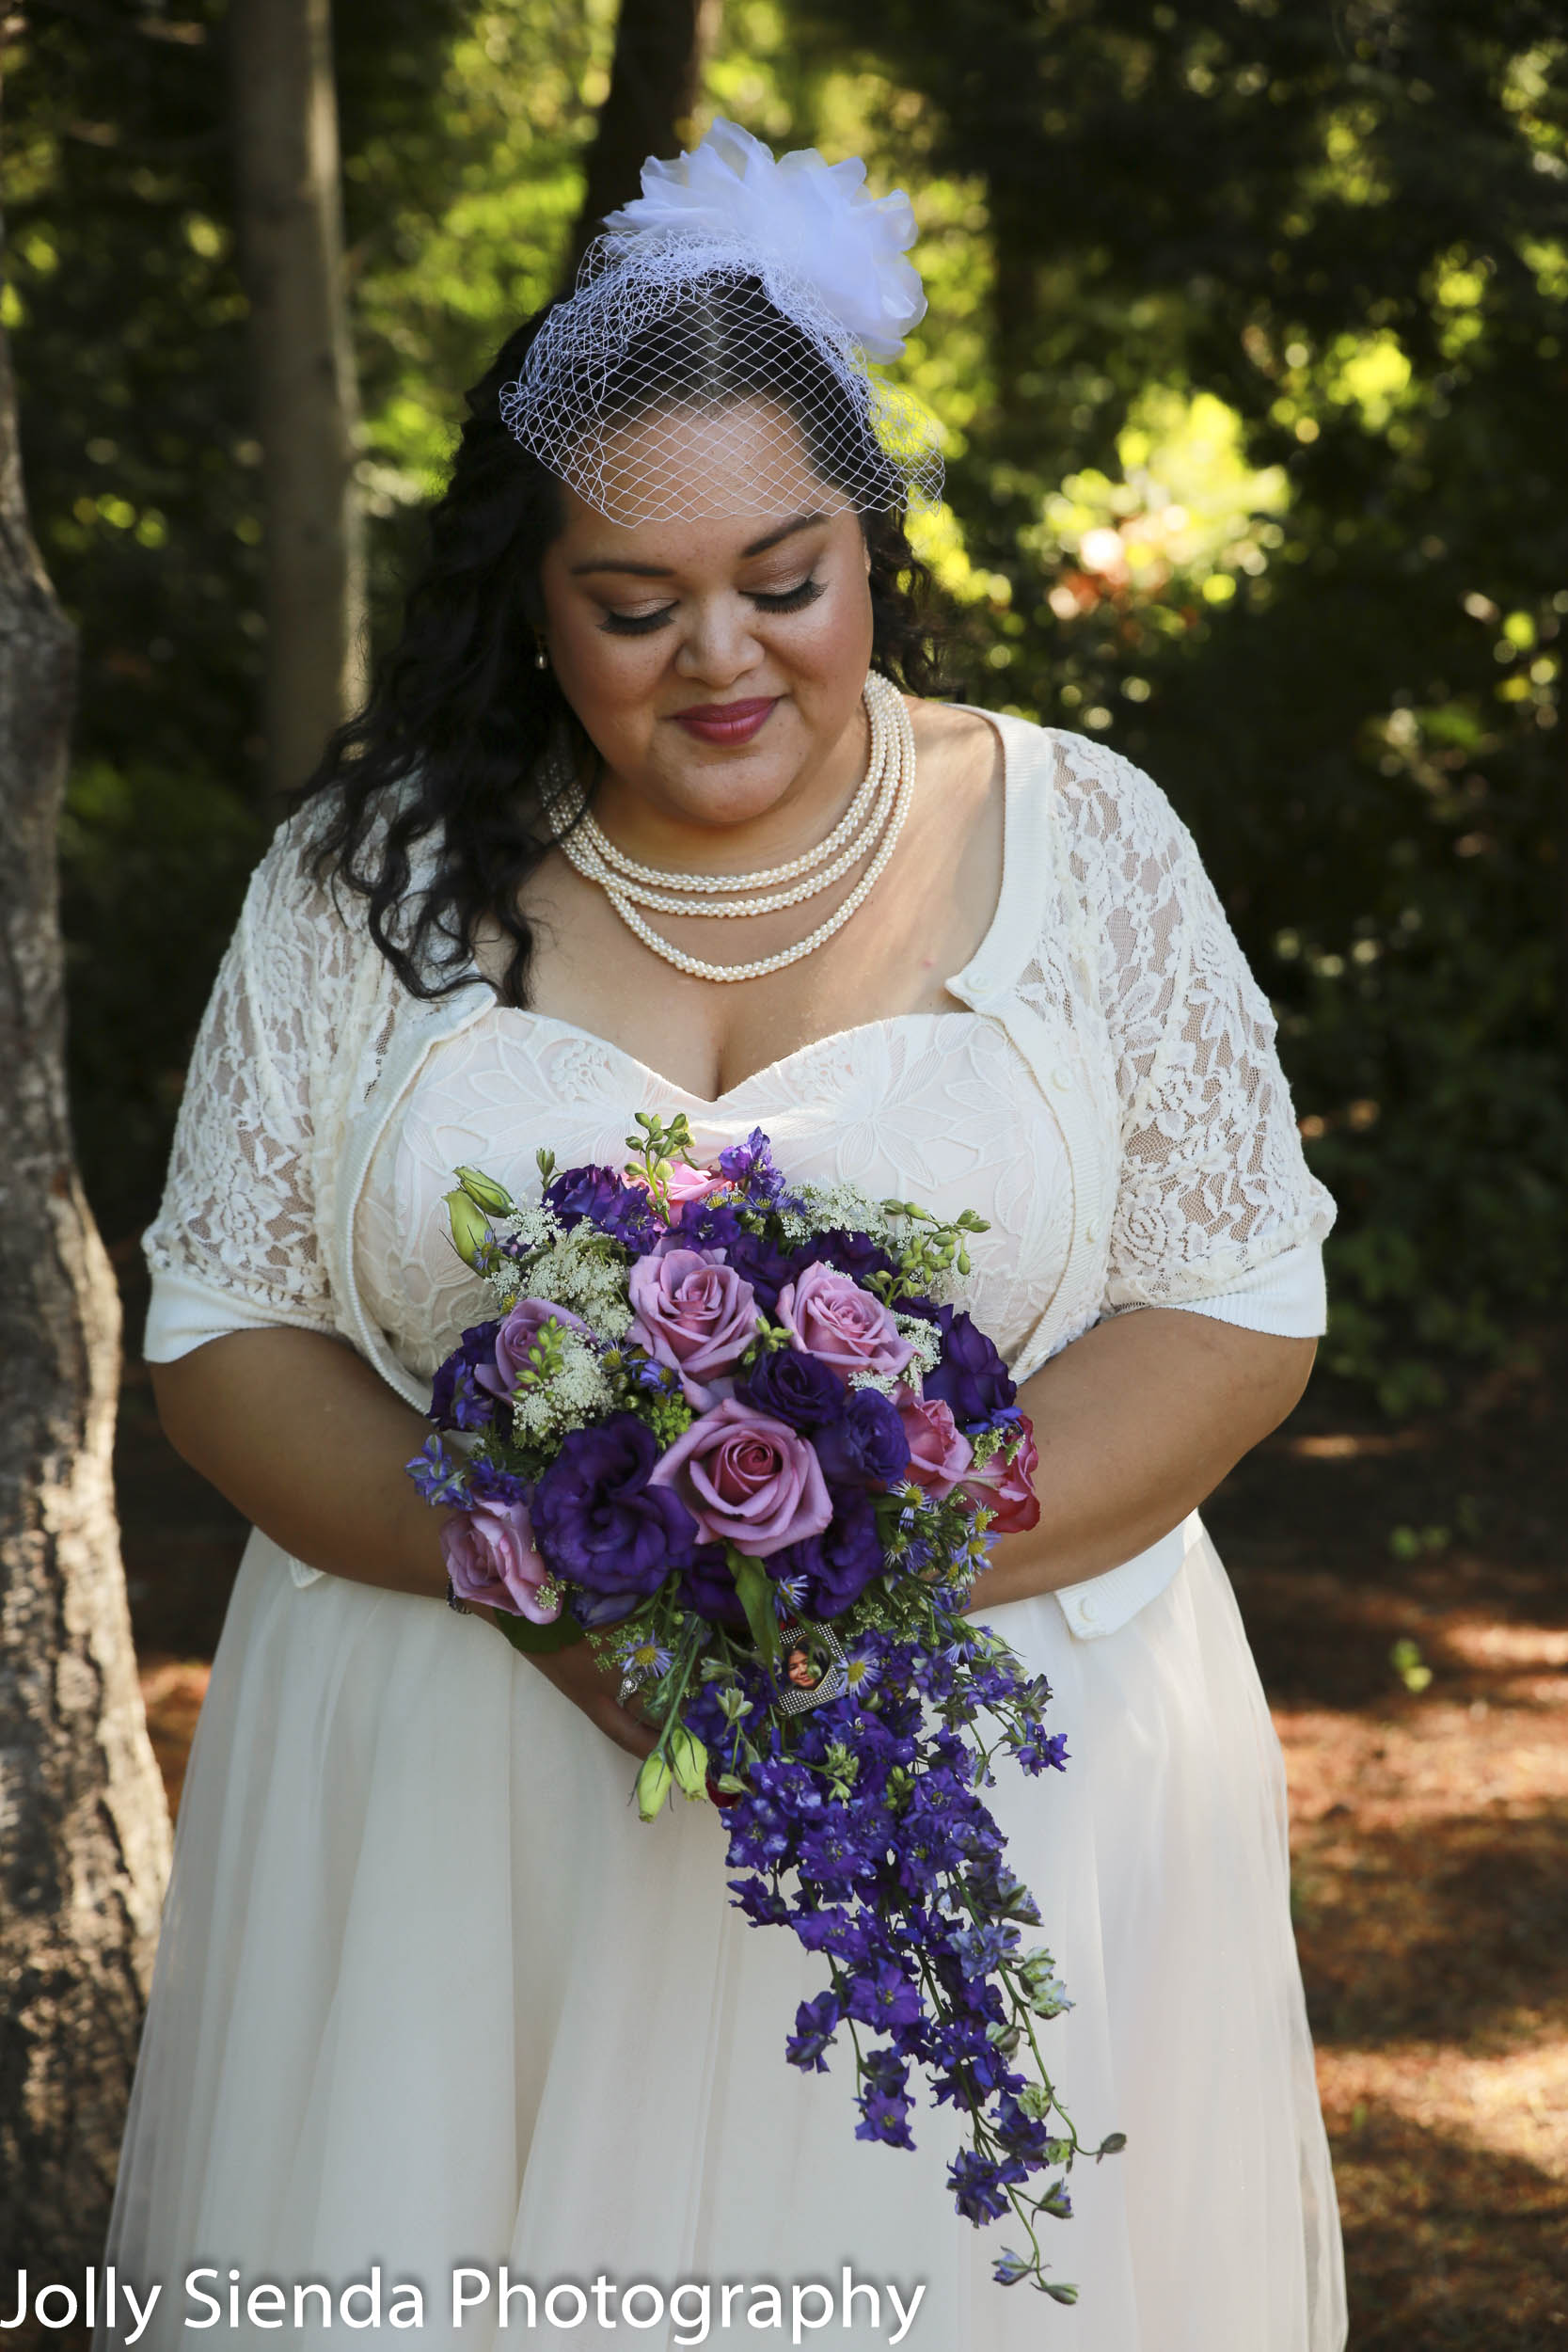 Nieves and Chad Wright, bridal portrait photography